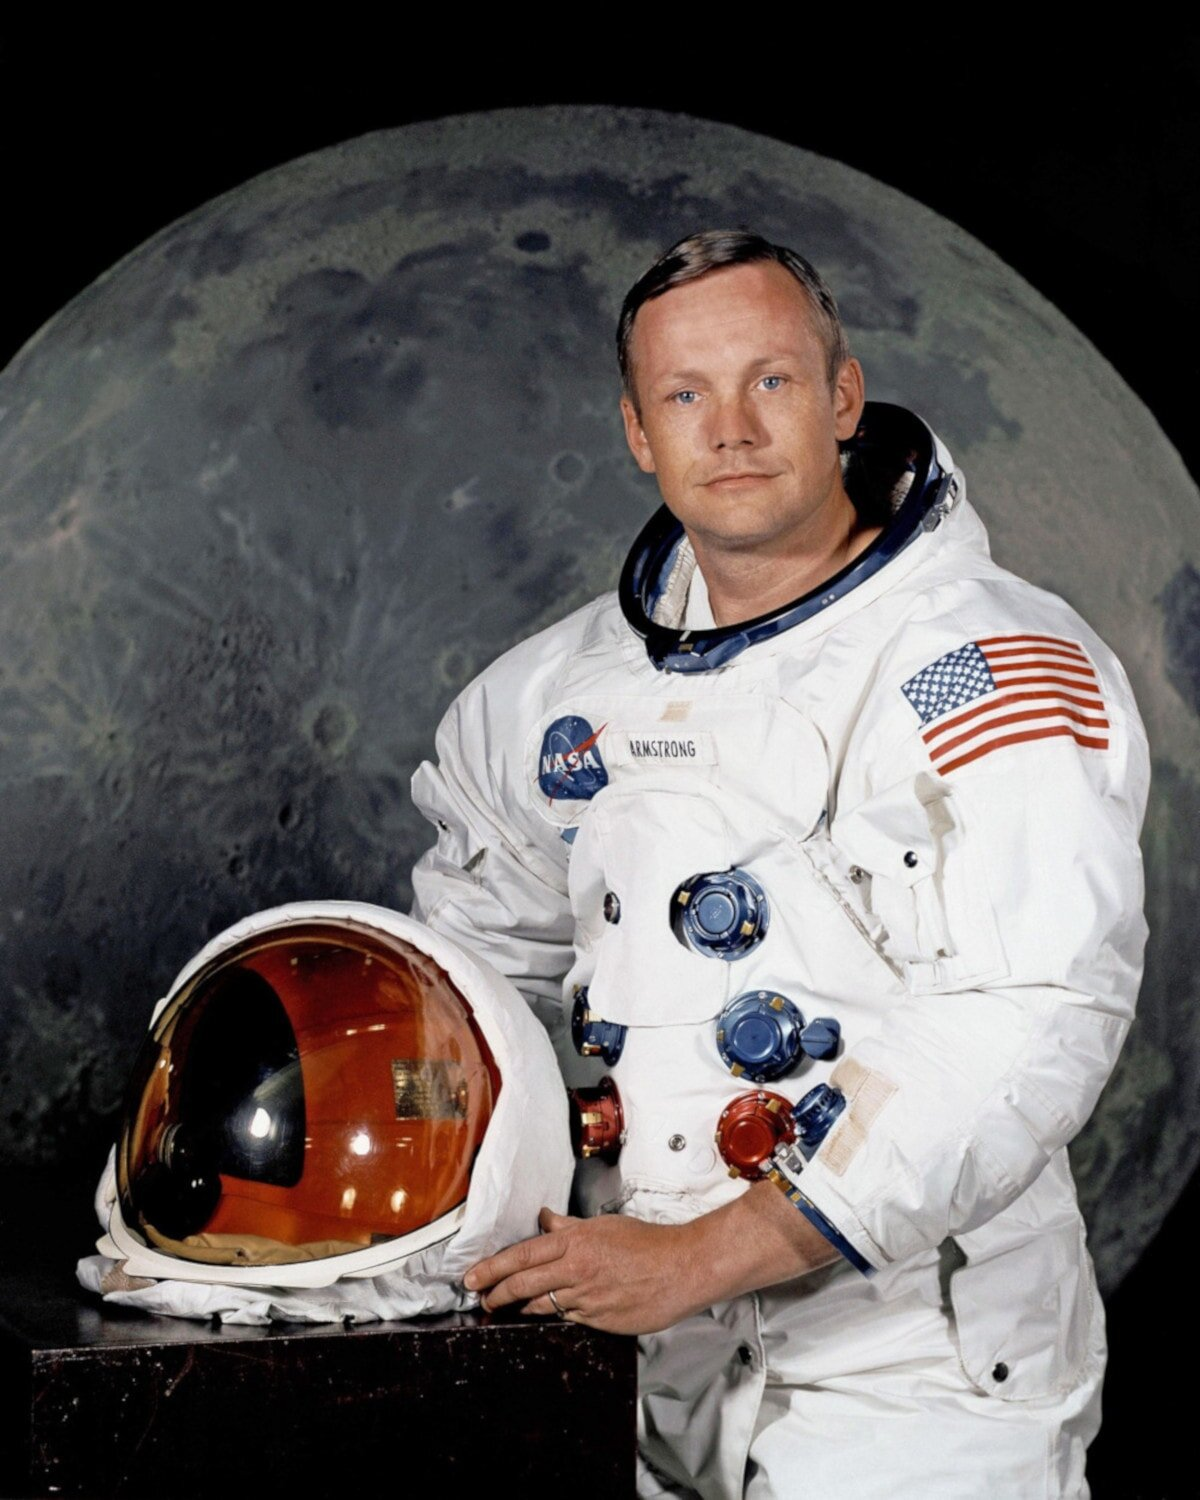 Neil Armstrong's likely to be another familiar name on this famous explorers list.